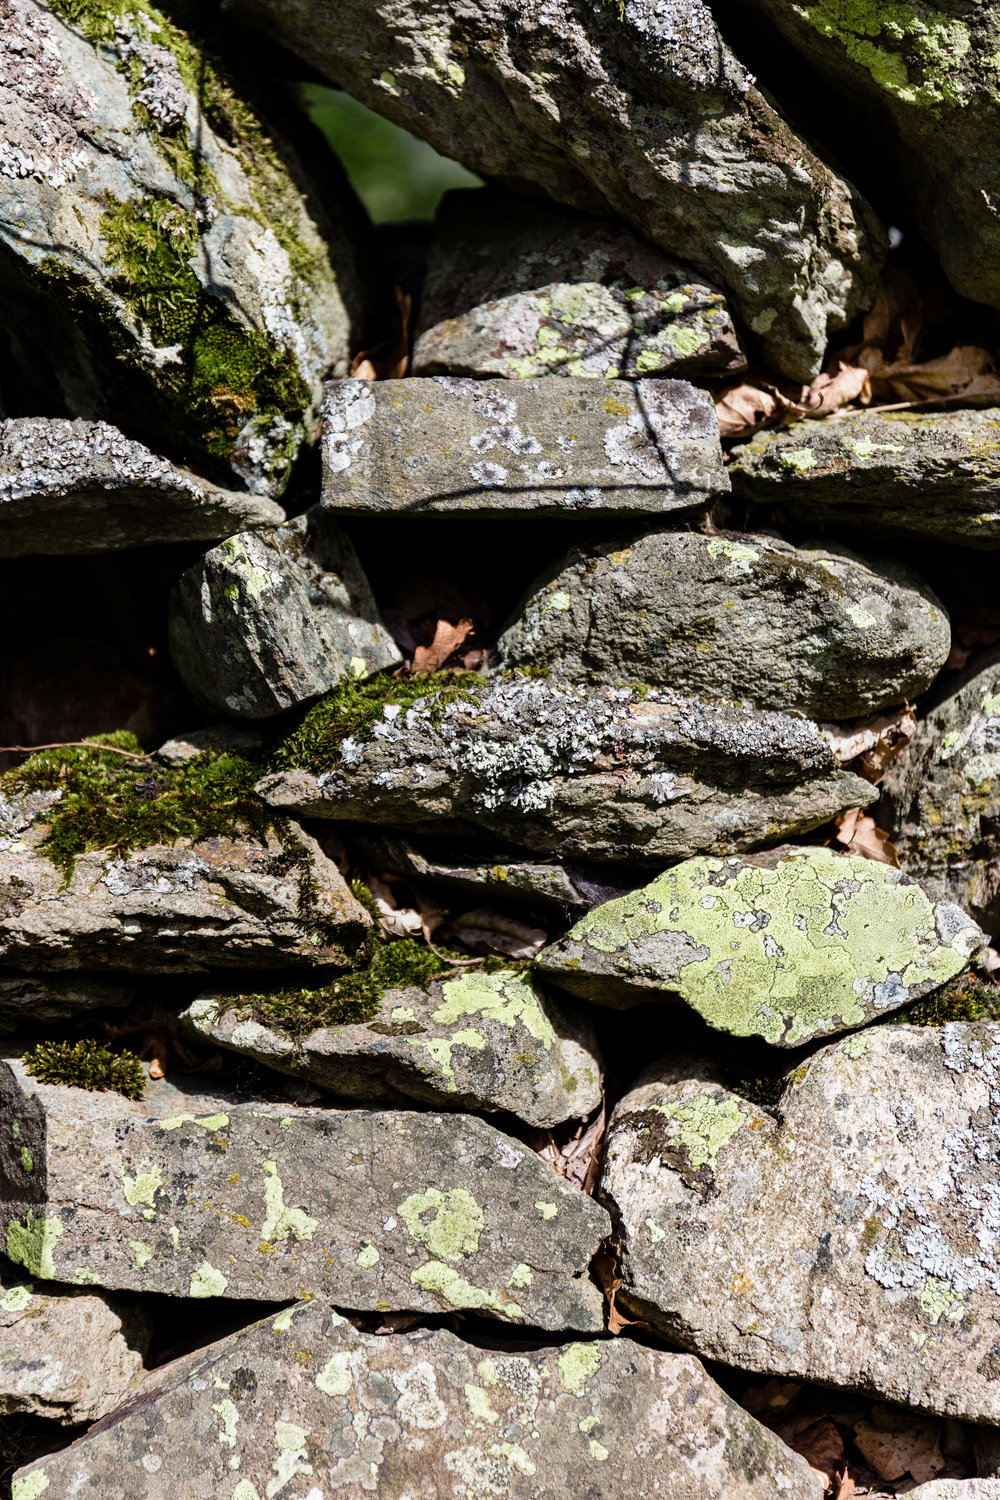 ...and beautiful dry-stone walls